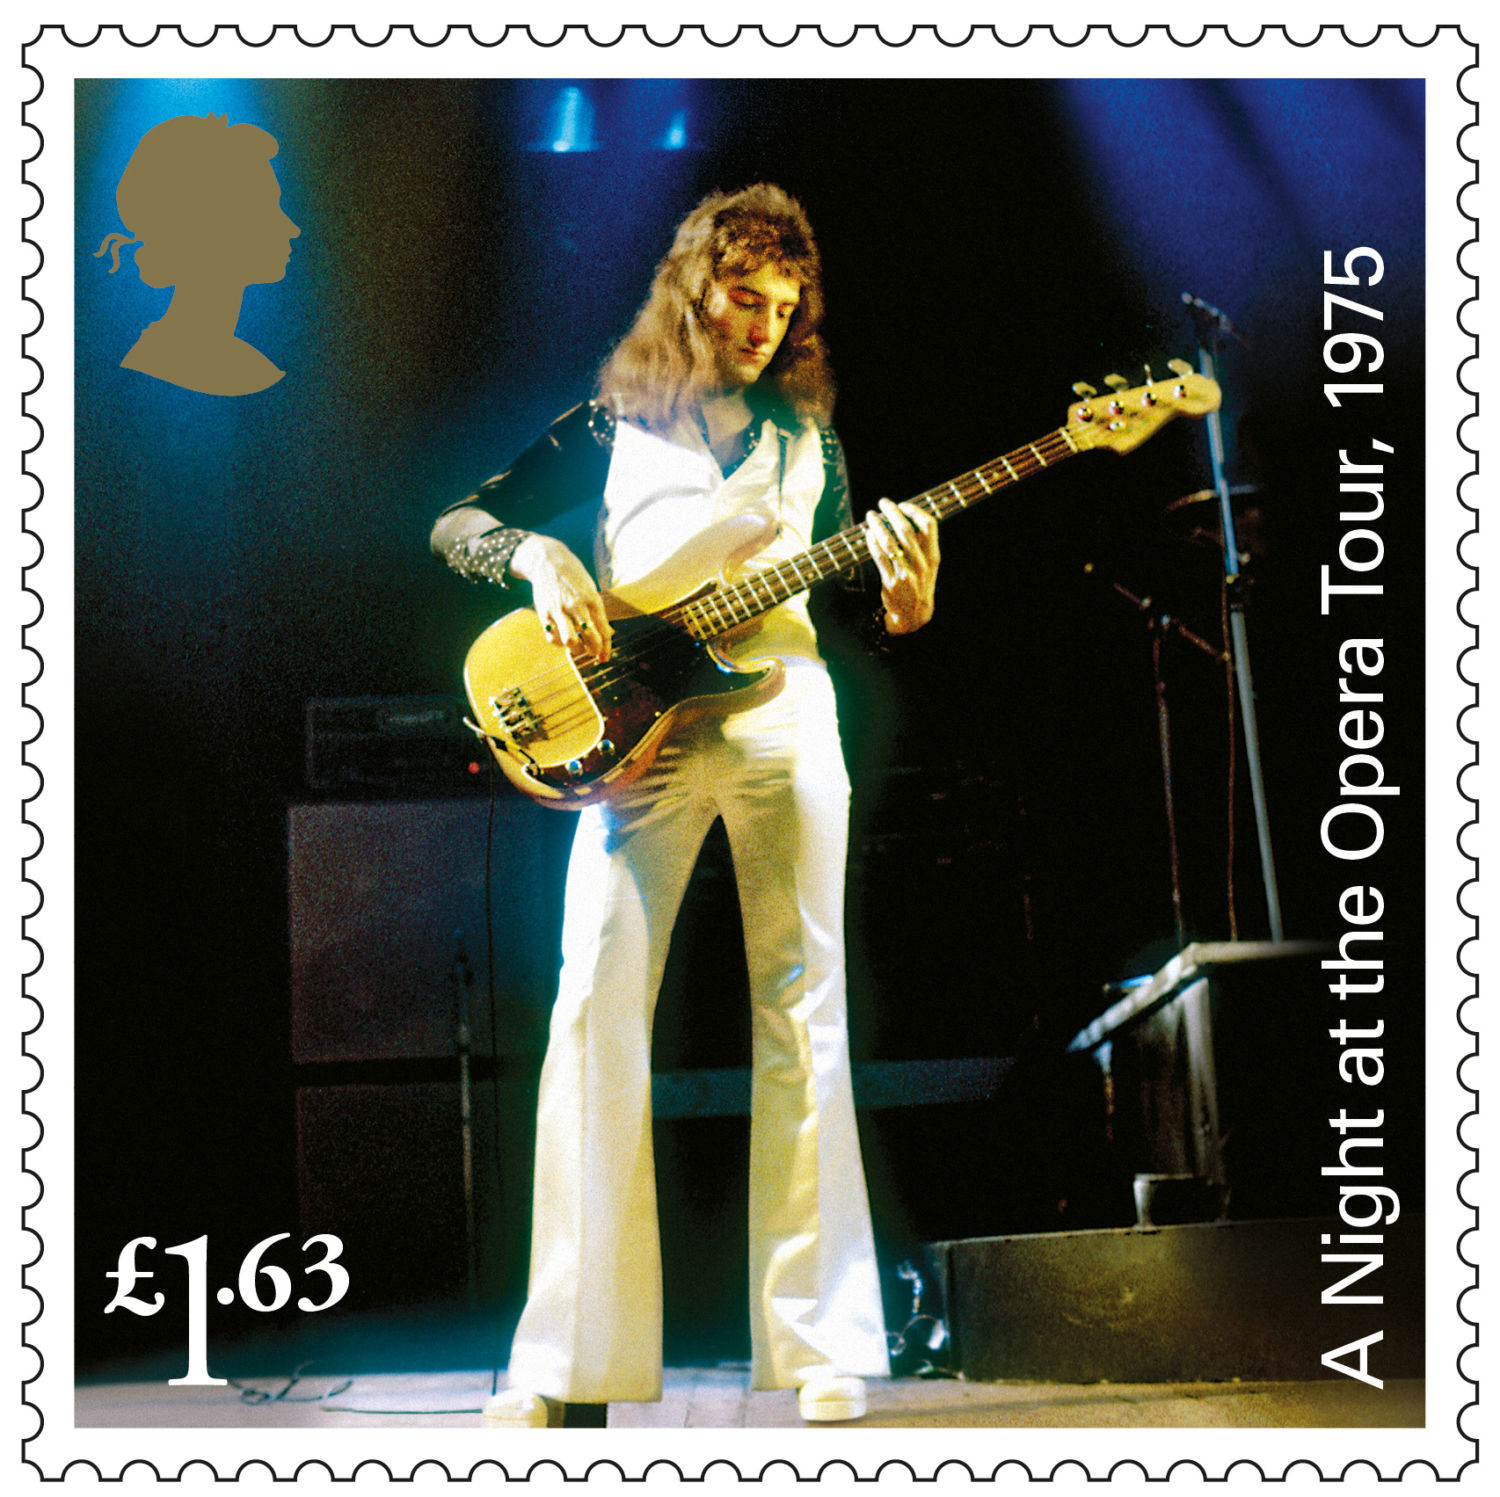 Rock band Queen get postage stamp of approval (photos) 16